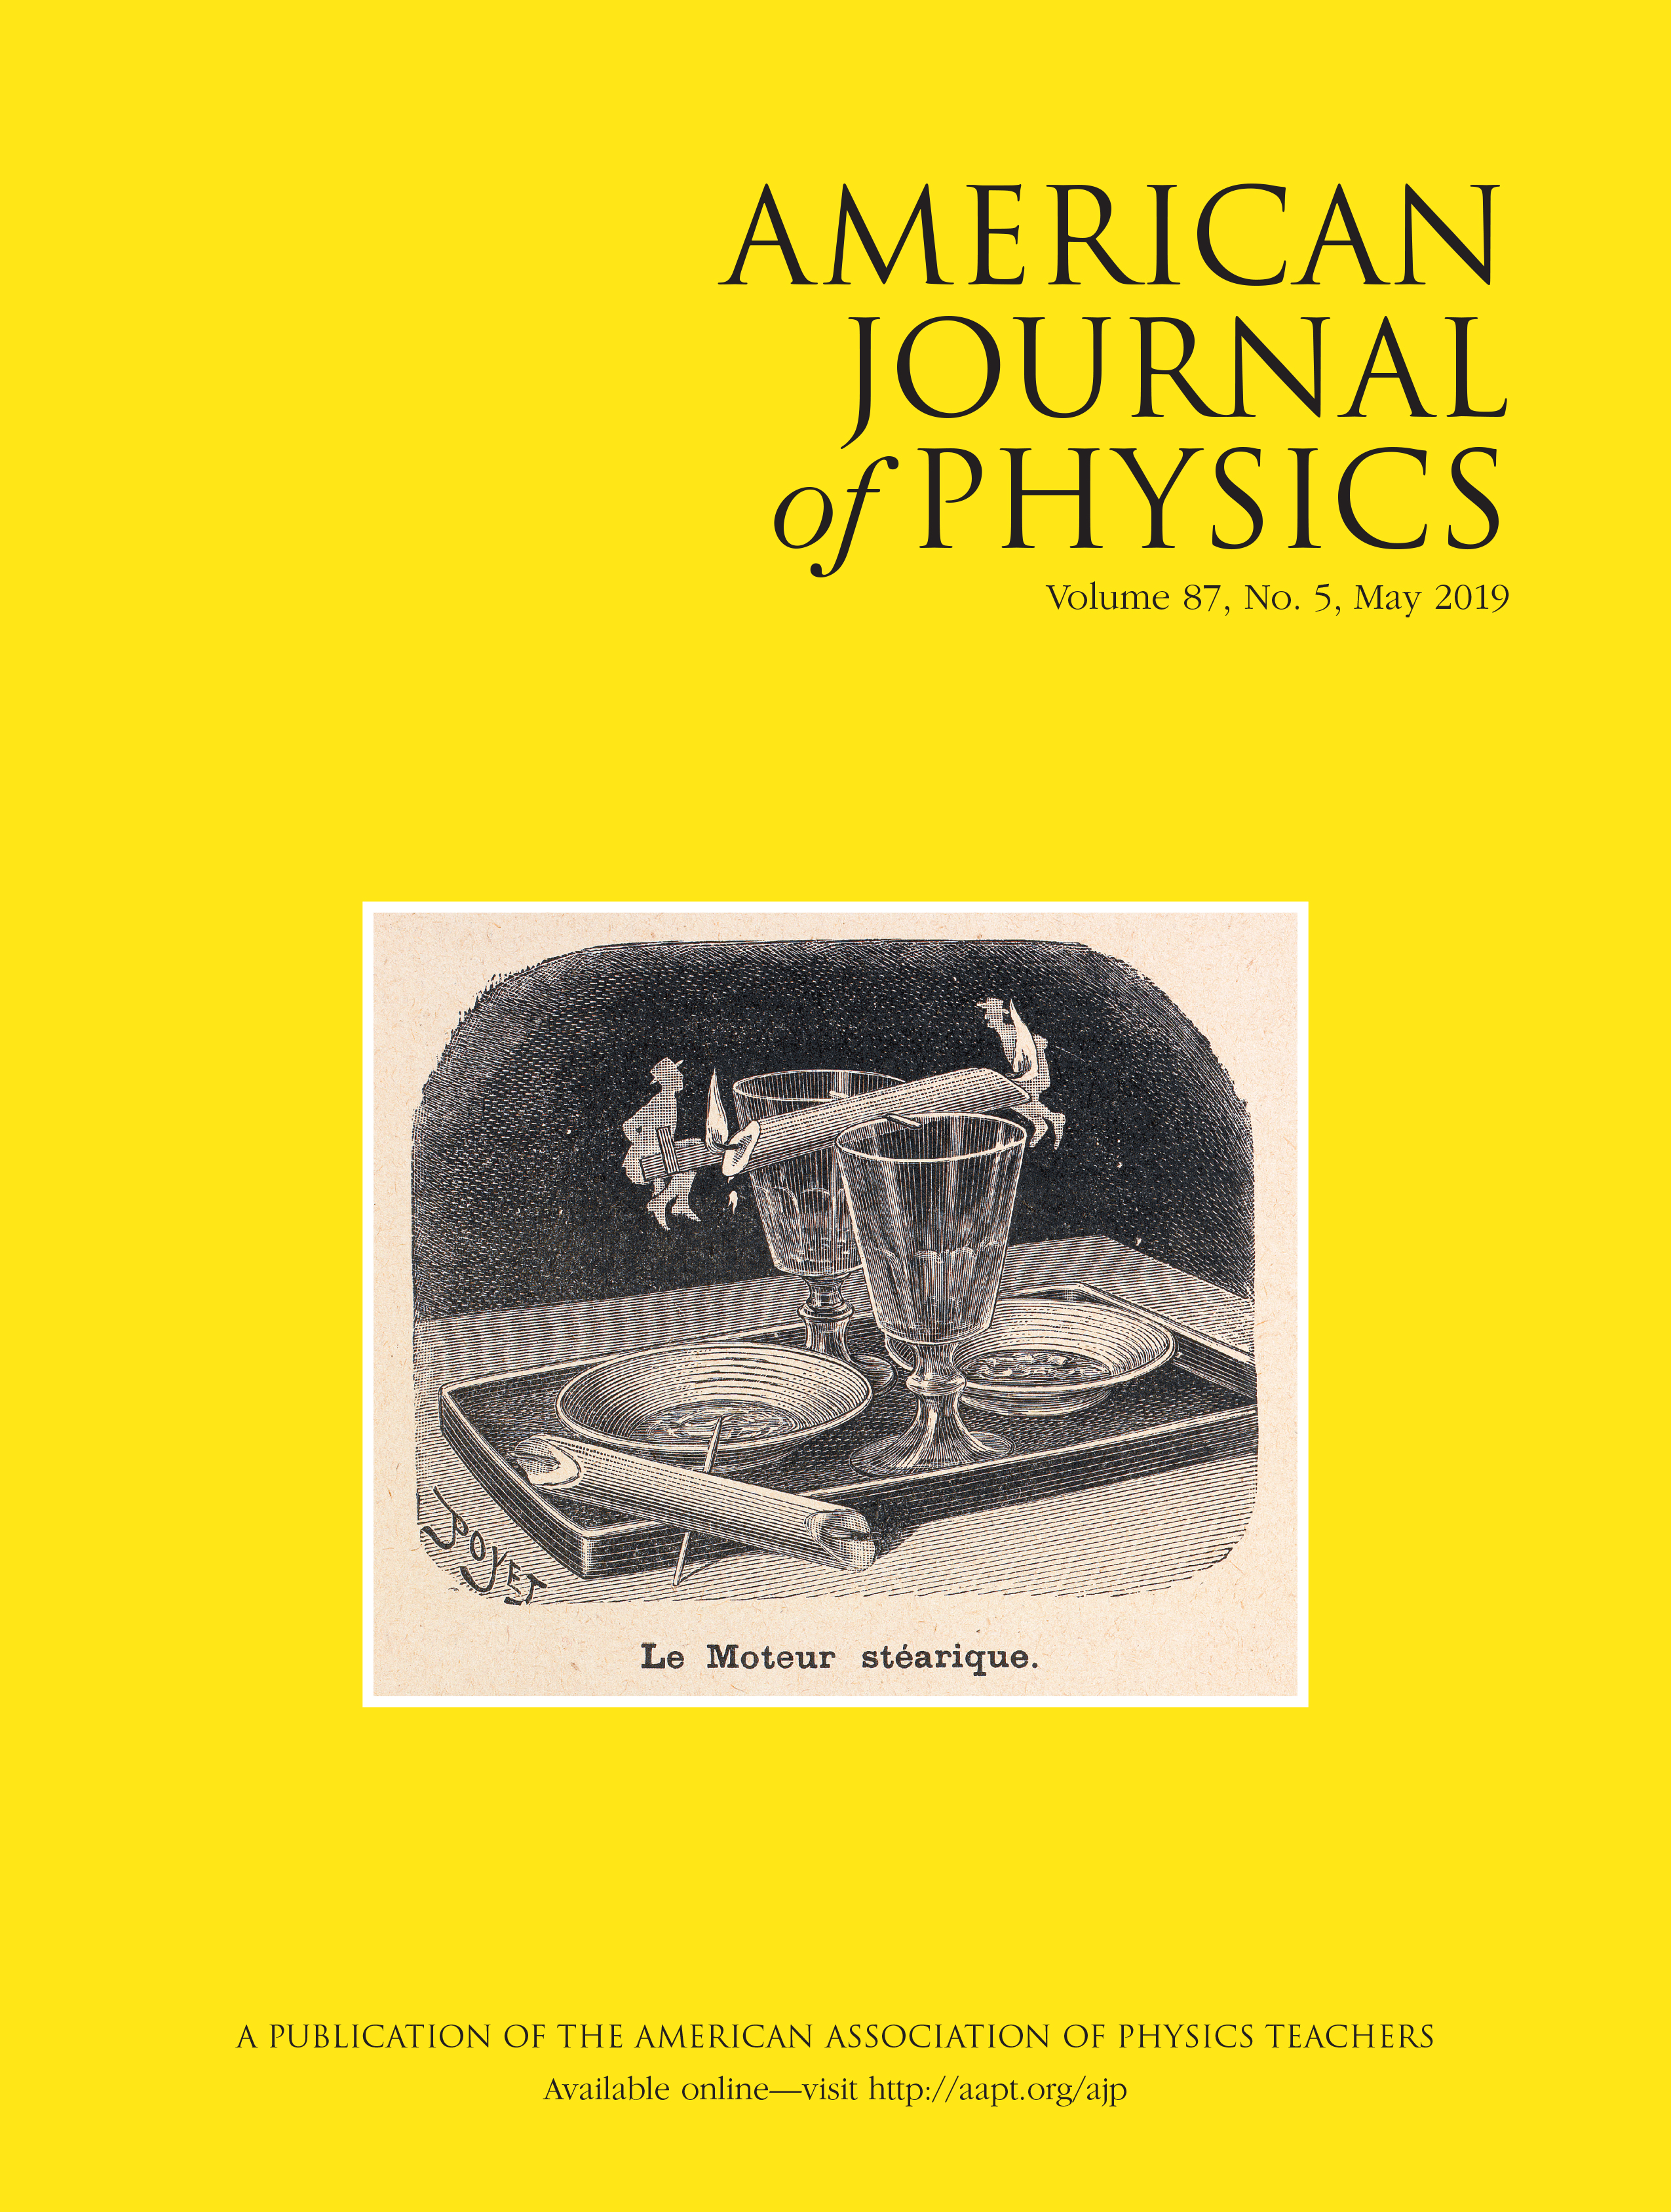 AJP Reviewers: American Journal of Physics: Vol 87, No 5